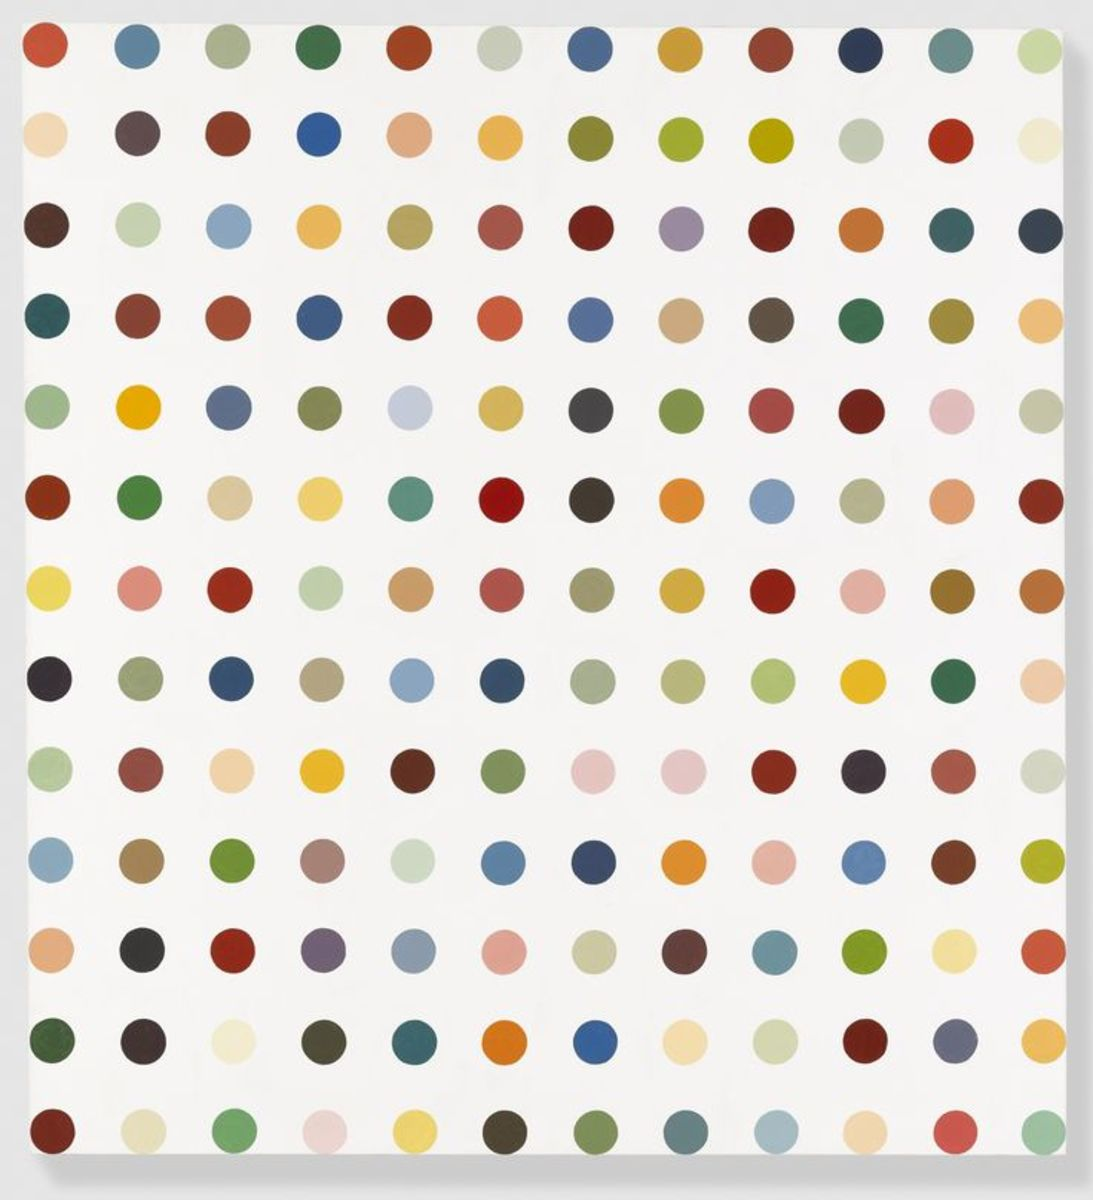 Damien Hirst, whose work is revered and reviled.